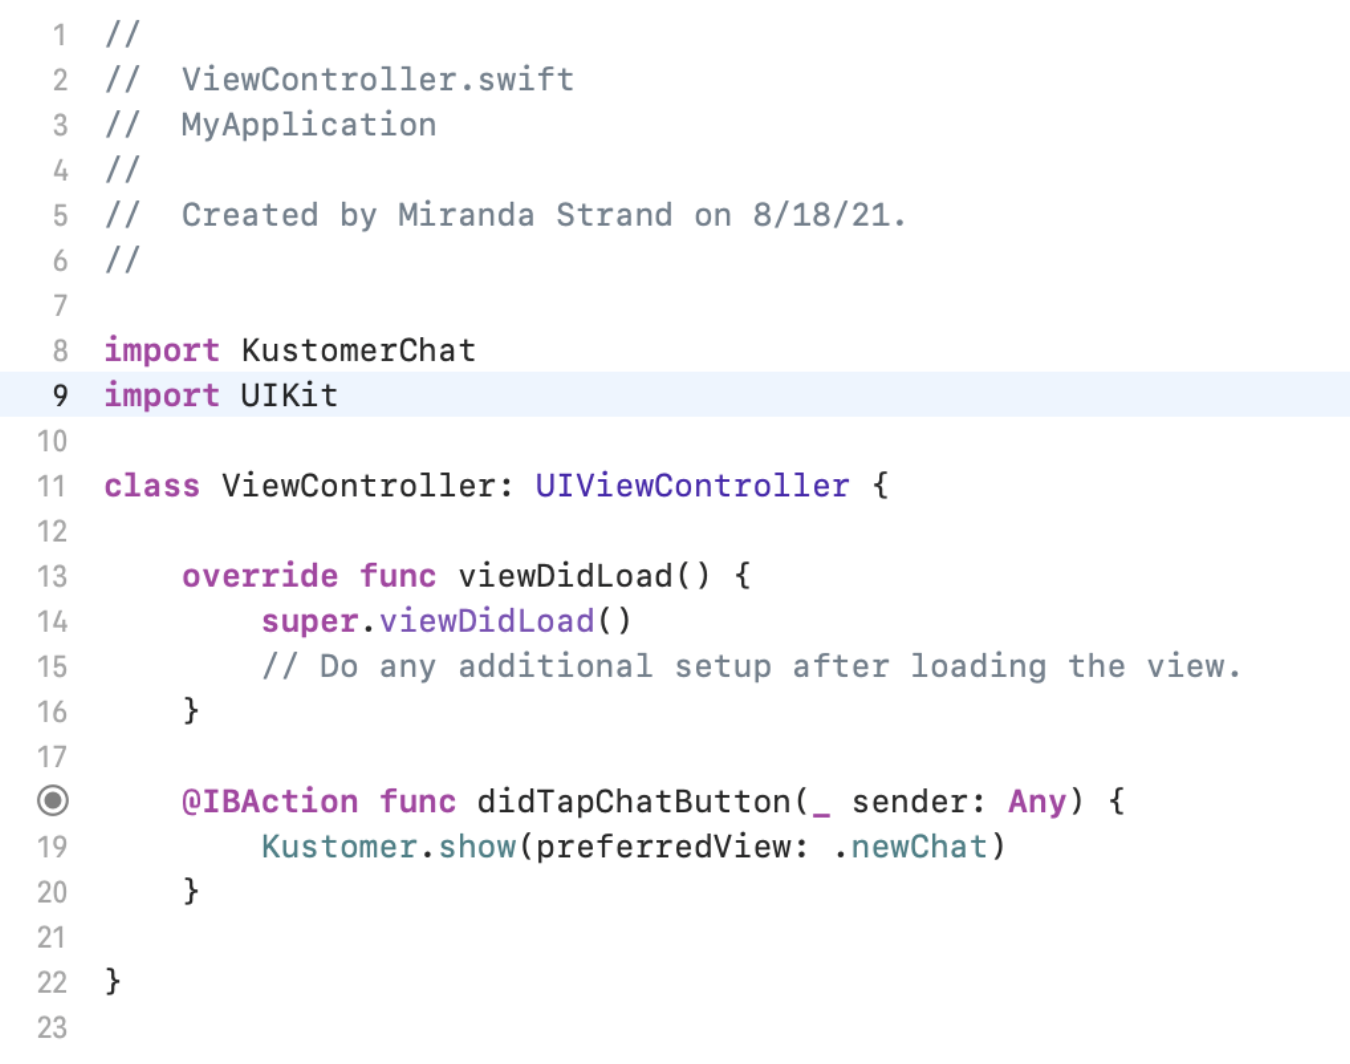 Add `import KustomerChat` to the imports and then add `Kustomer.show(preferredView: .newChat)` to the body of `didTapChatButton()`